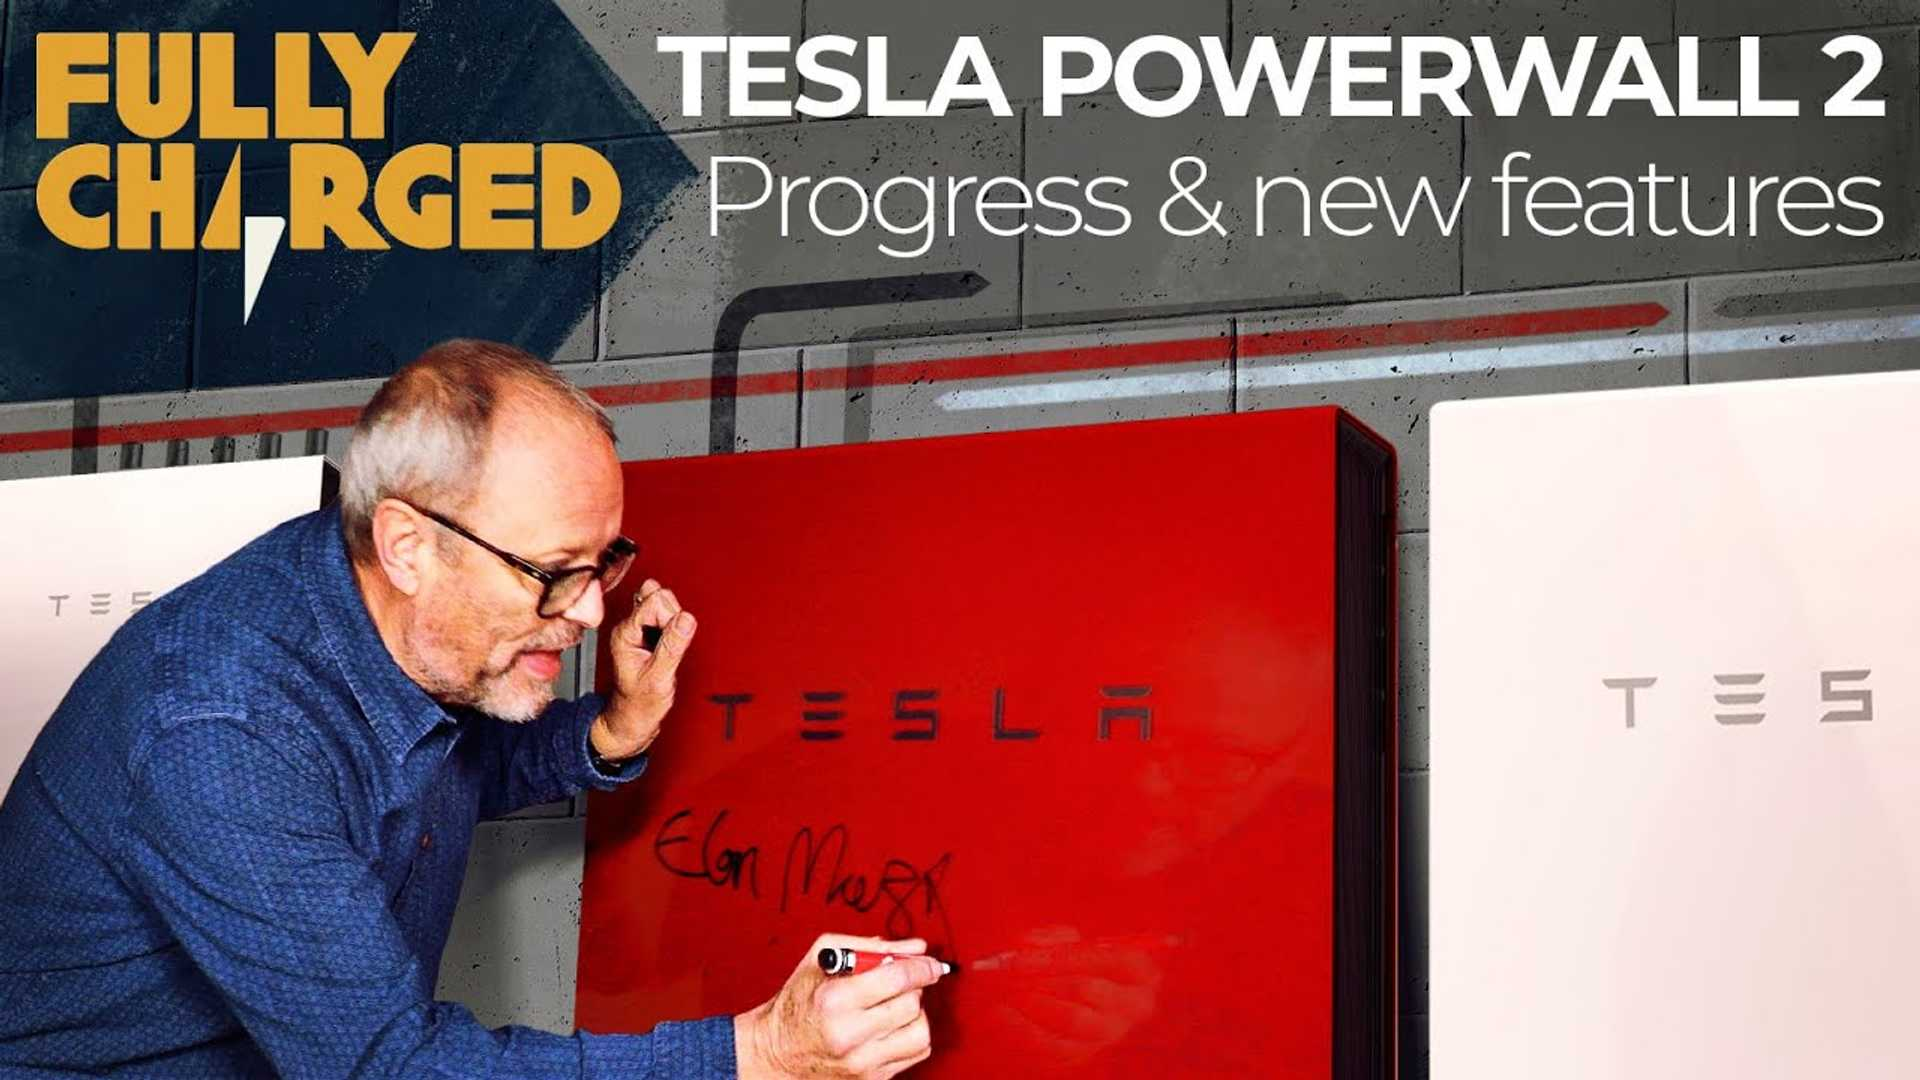 UK home with Tesla Powerwall solar system prevents power outages